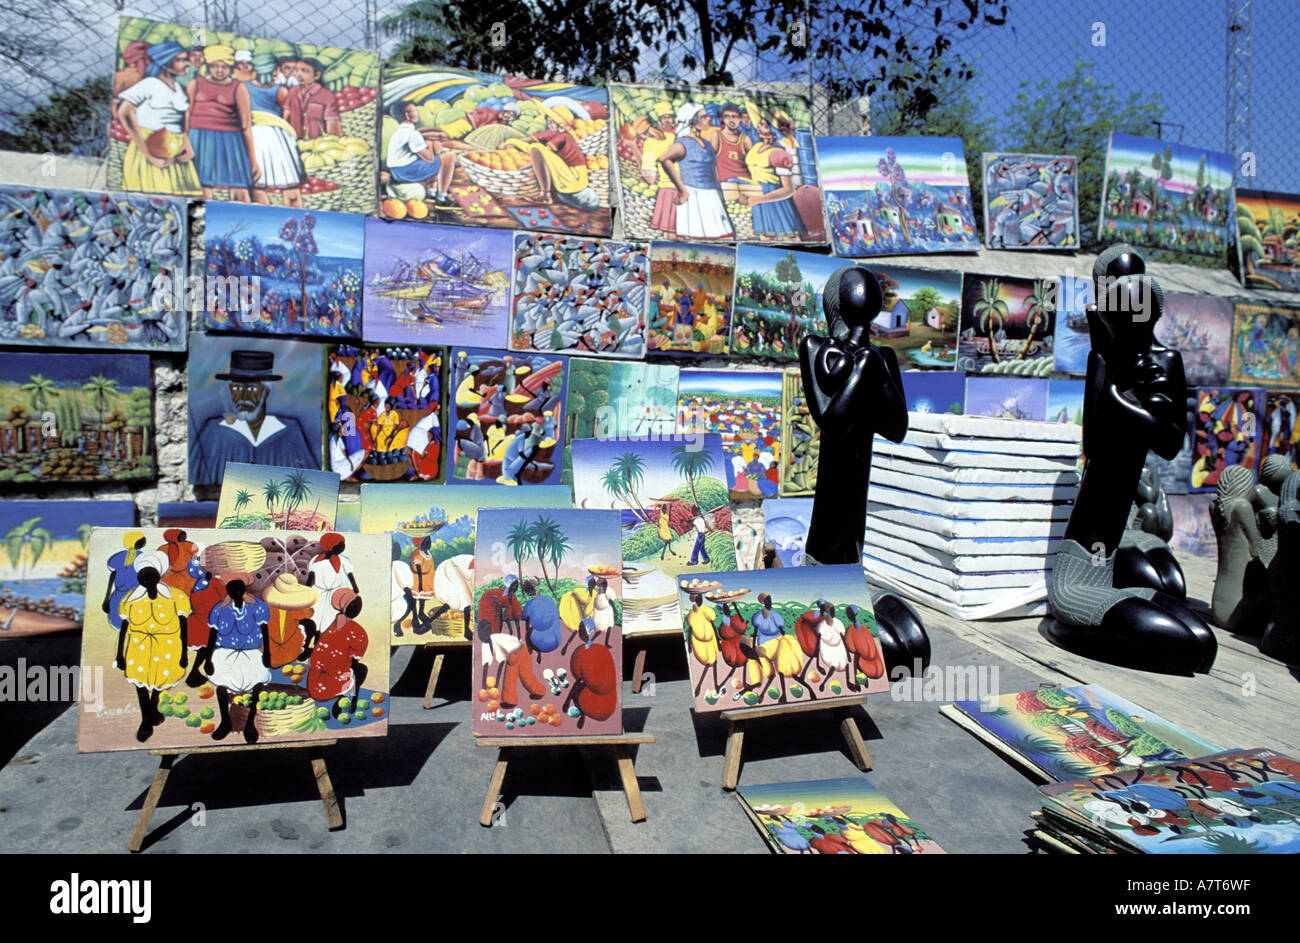 Haiti, Port au Prince, naive painting for sale - Stock Image